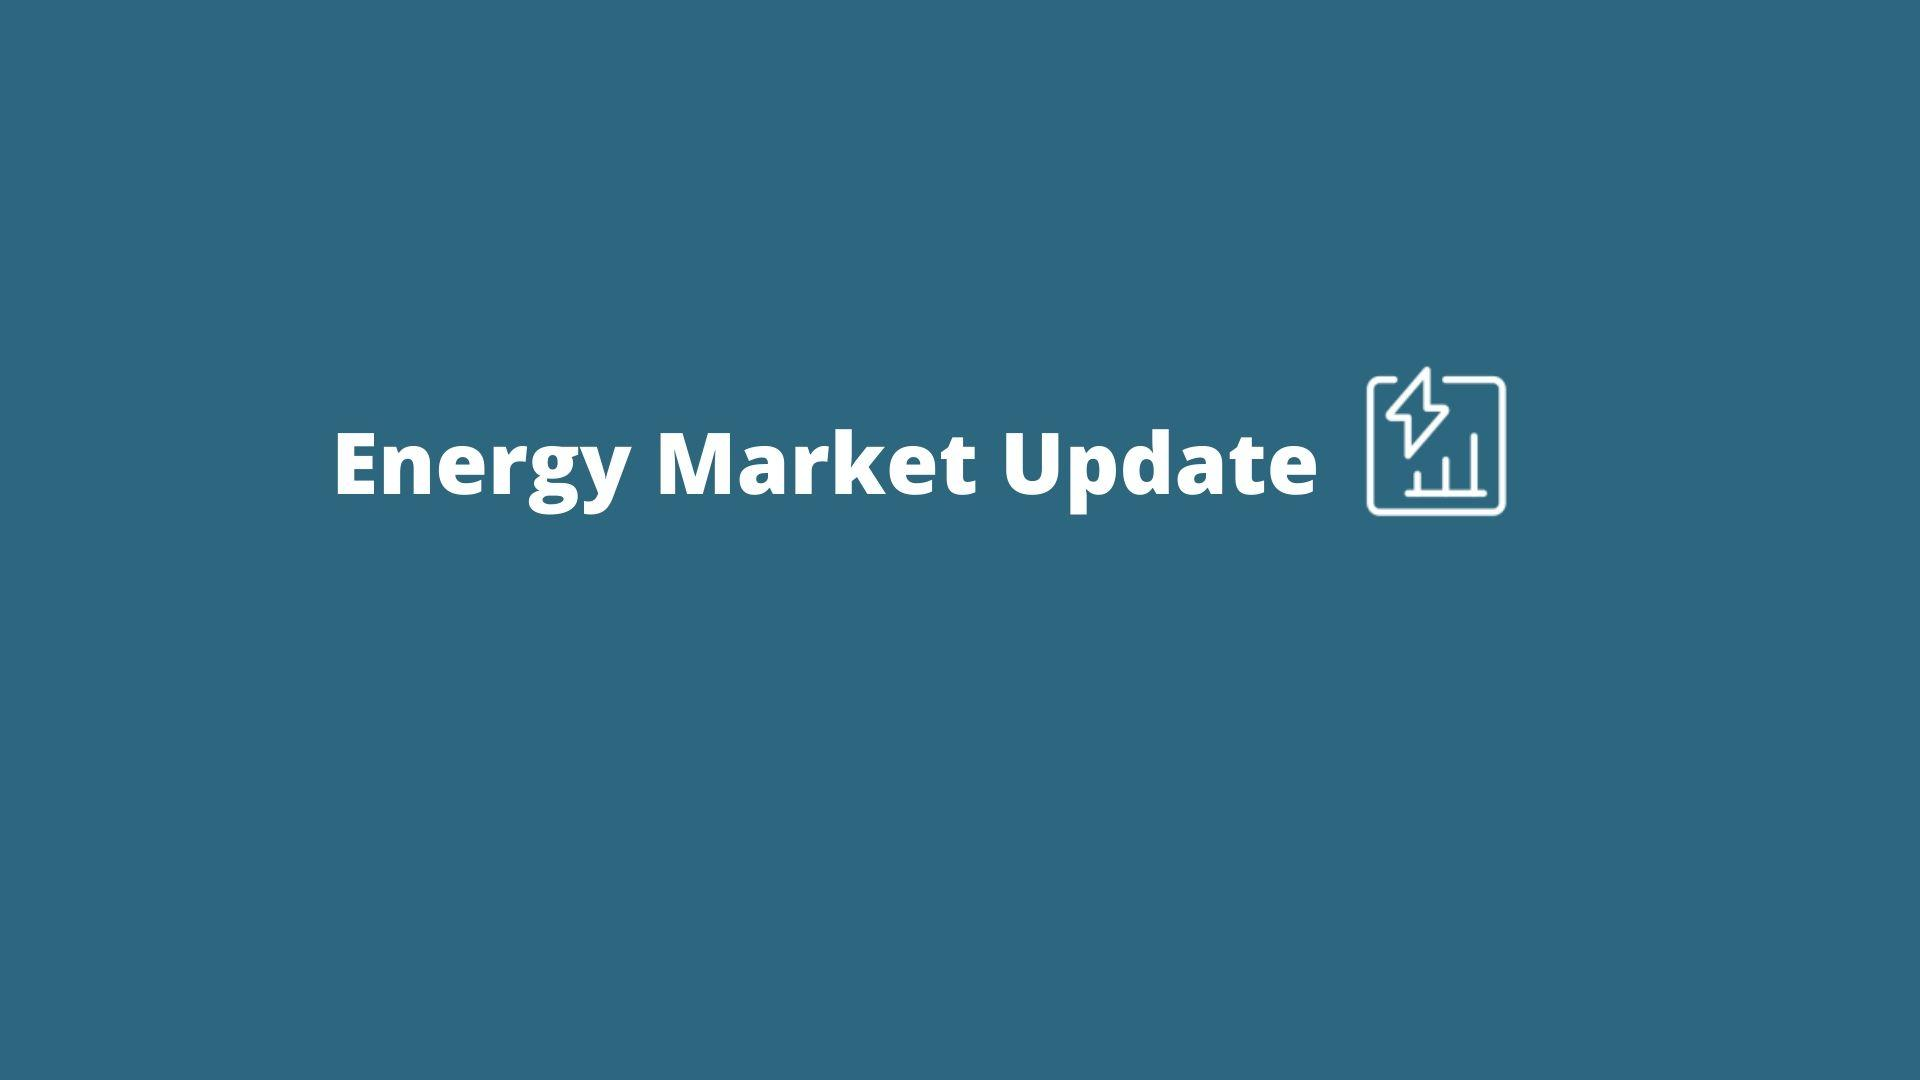 Energy Market Update Tile